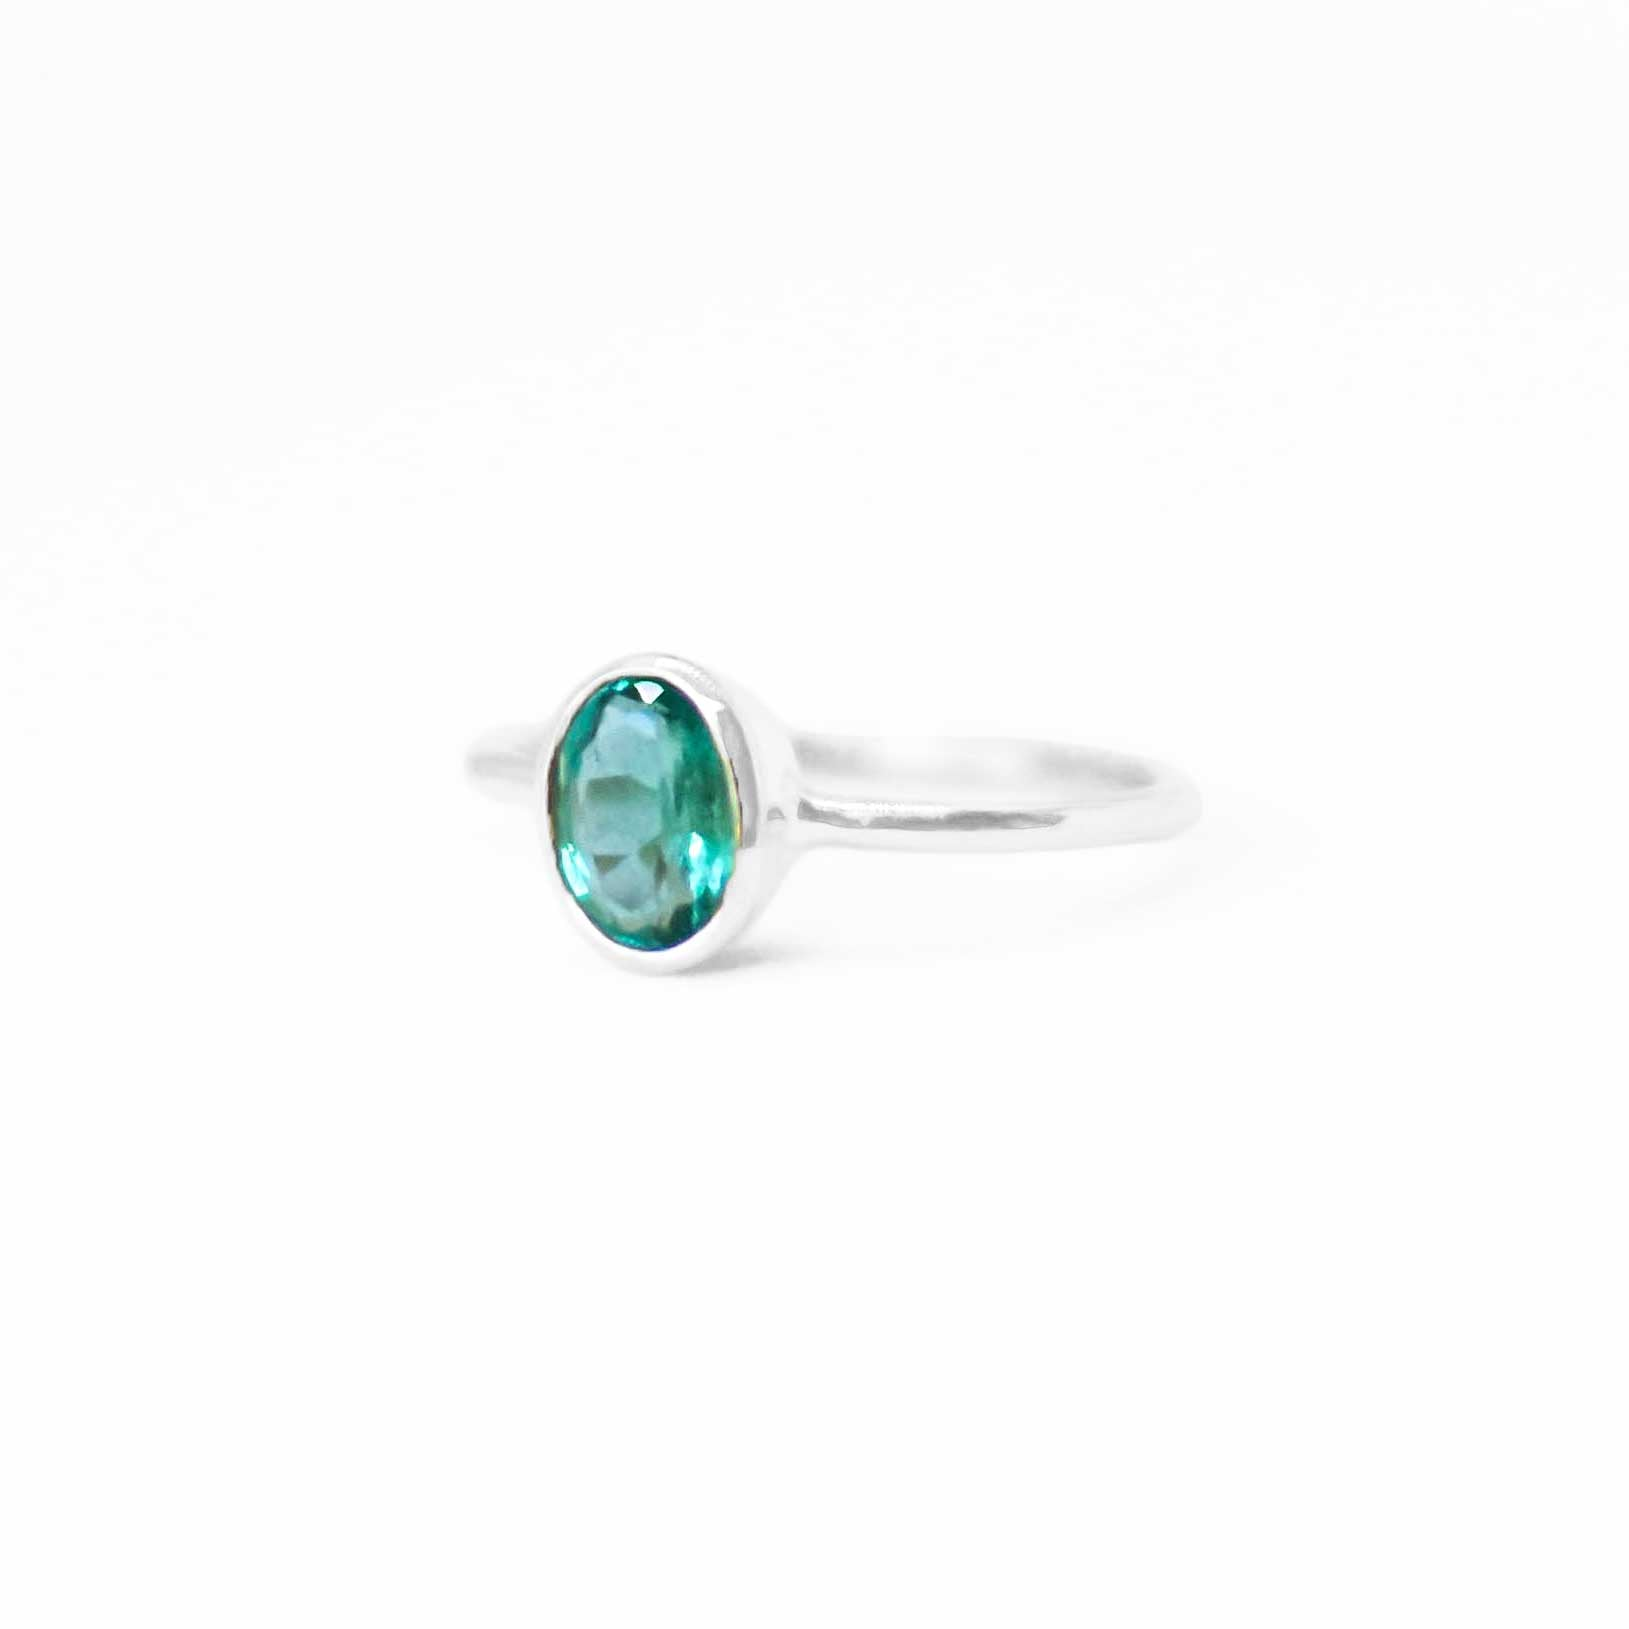 925 Silver Luxe Series Ring - Kabira (Emerald)